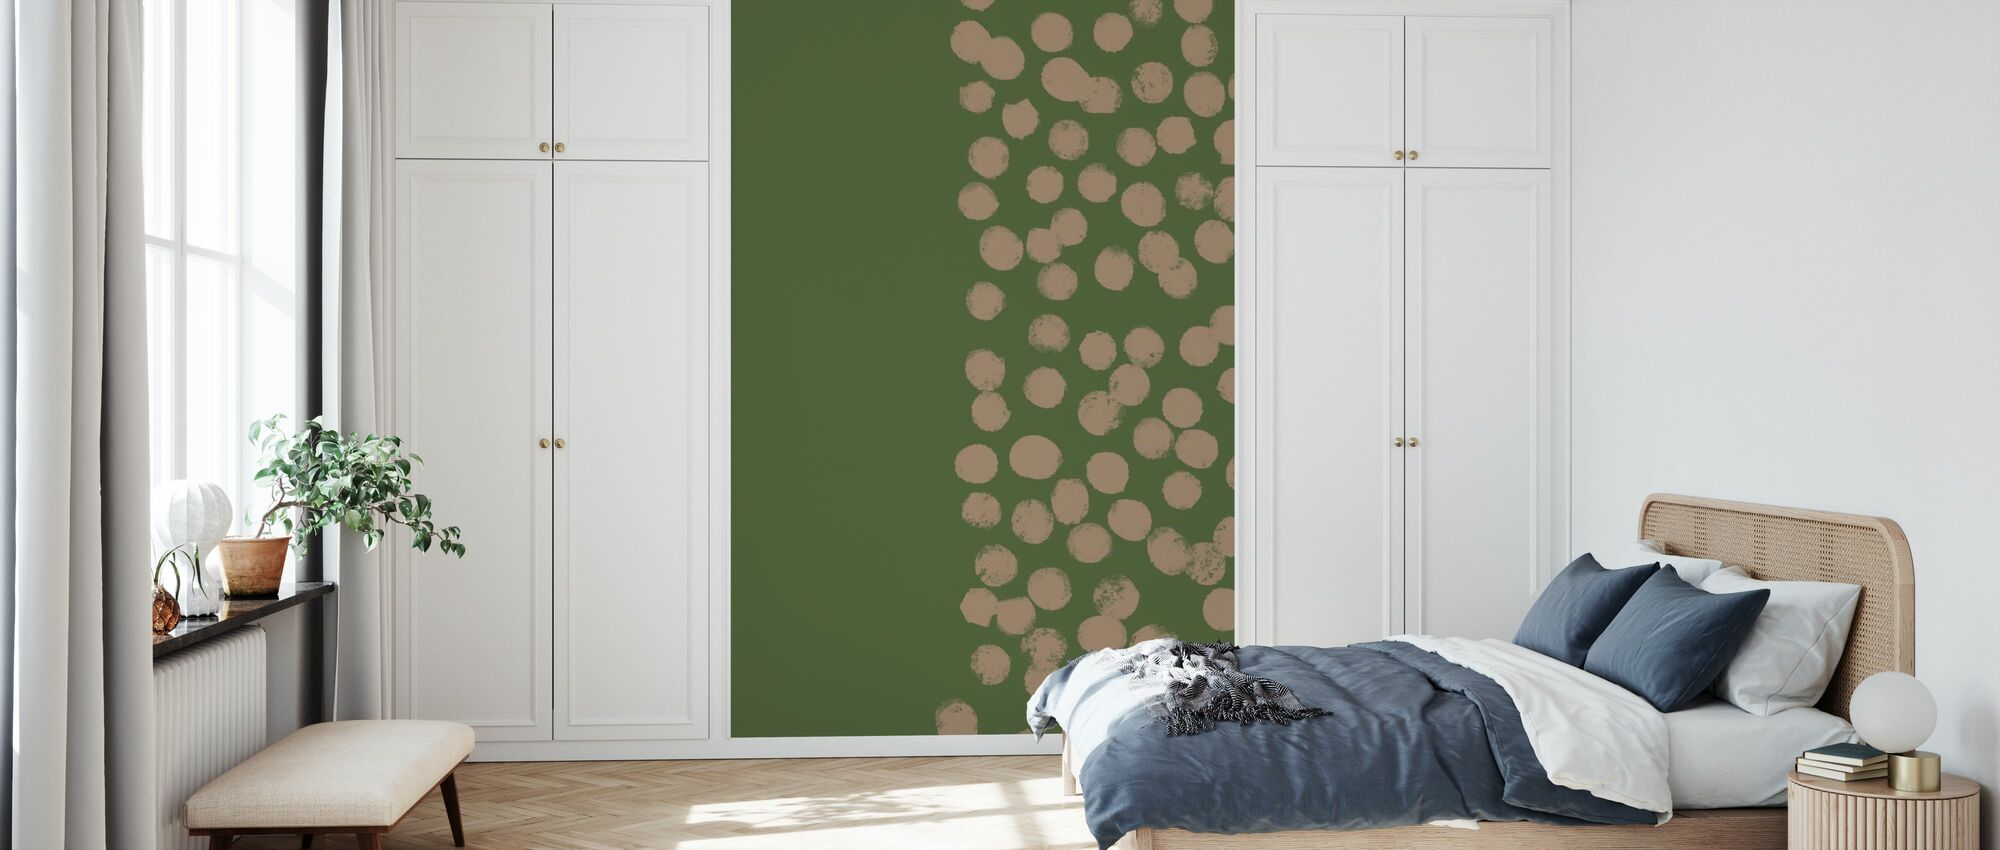 Hunting Green with Dots - Wallpaper - Bedroom